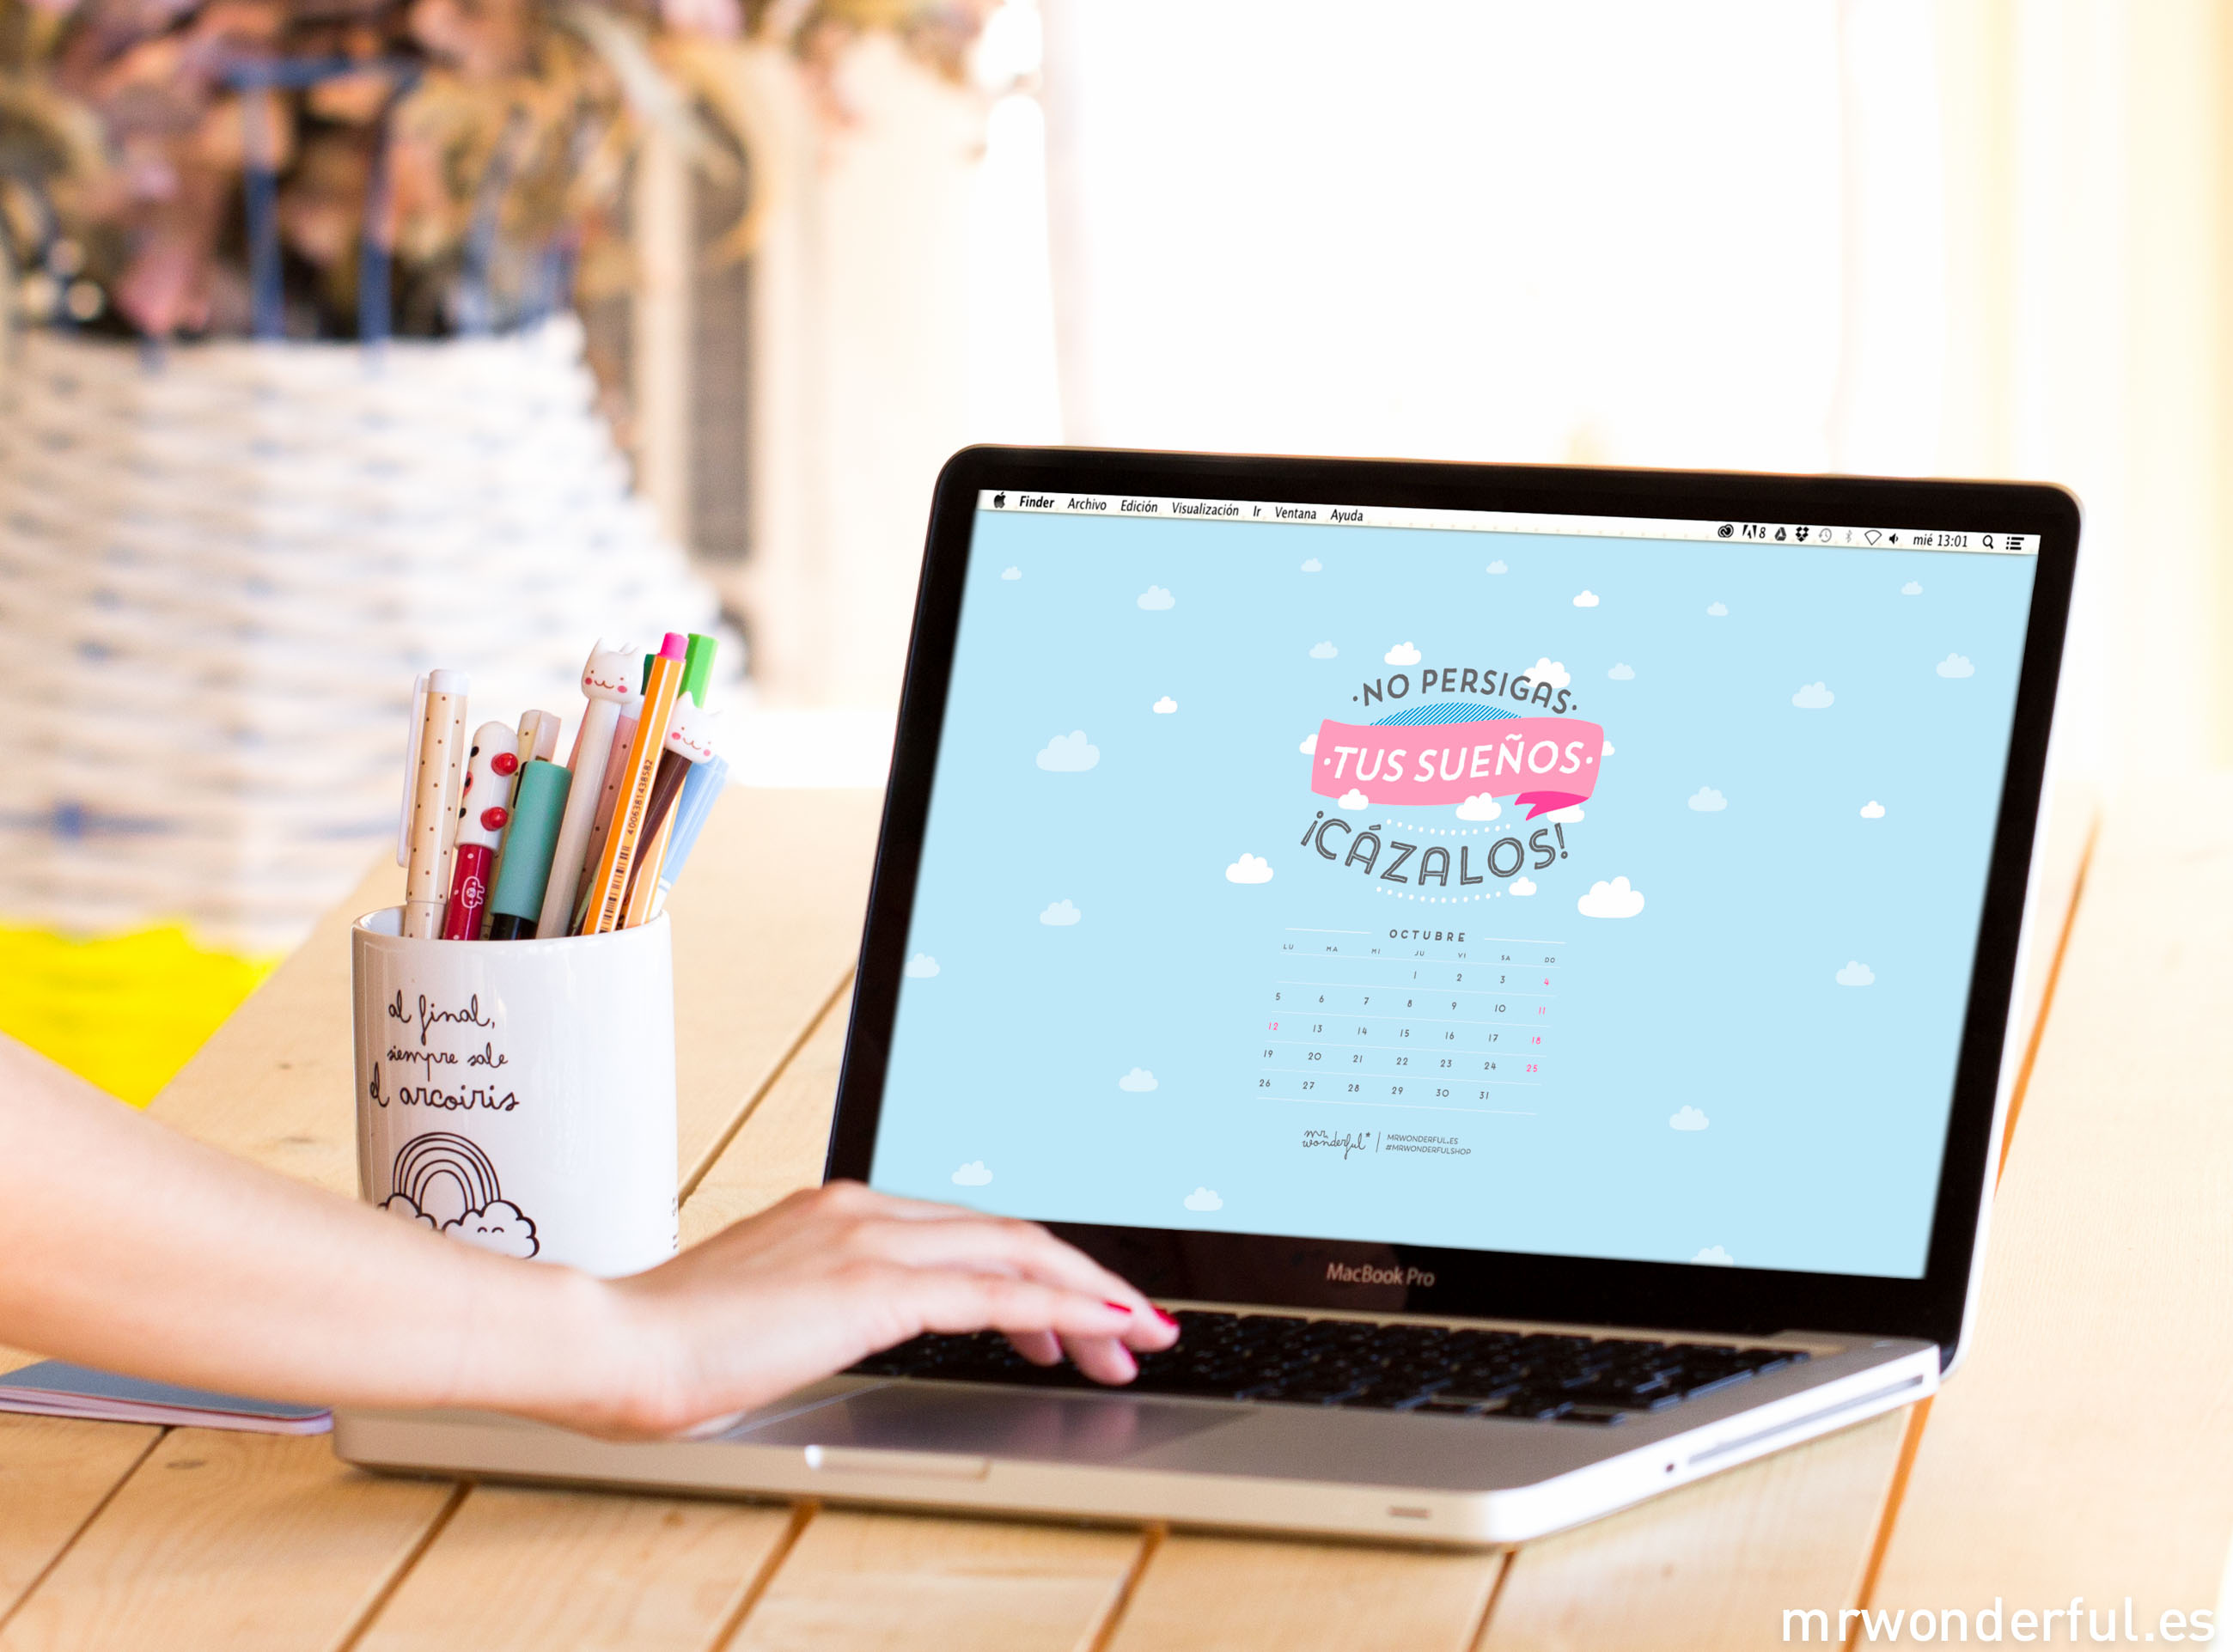 mrwonderful_descargables_dispositivos-general-115-Editar-2